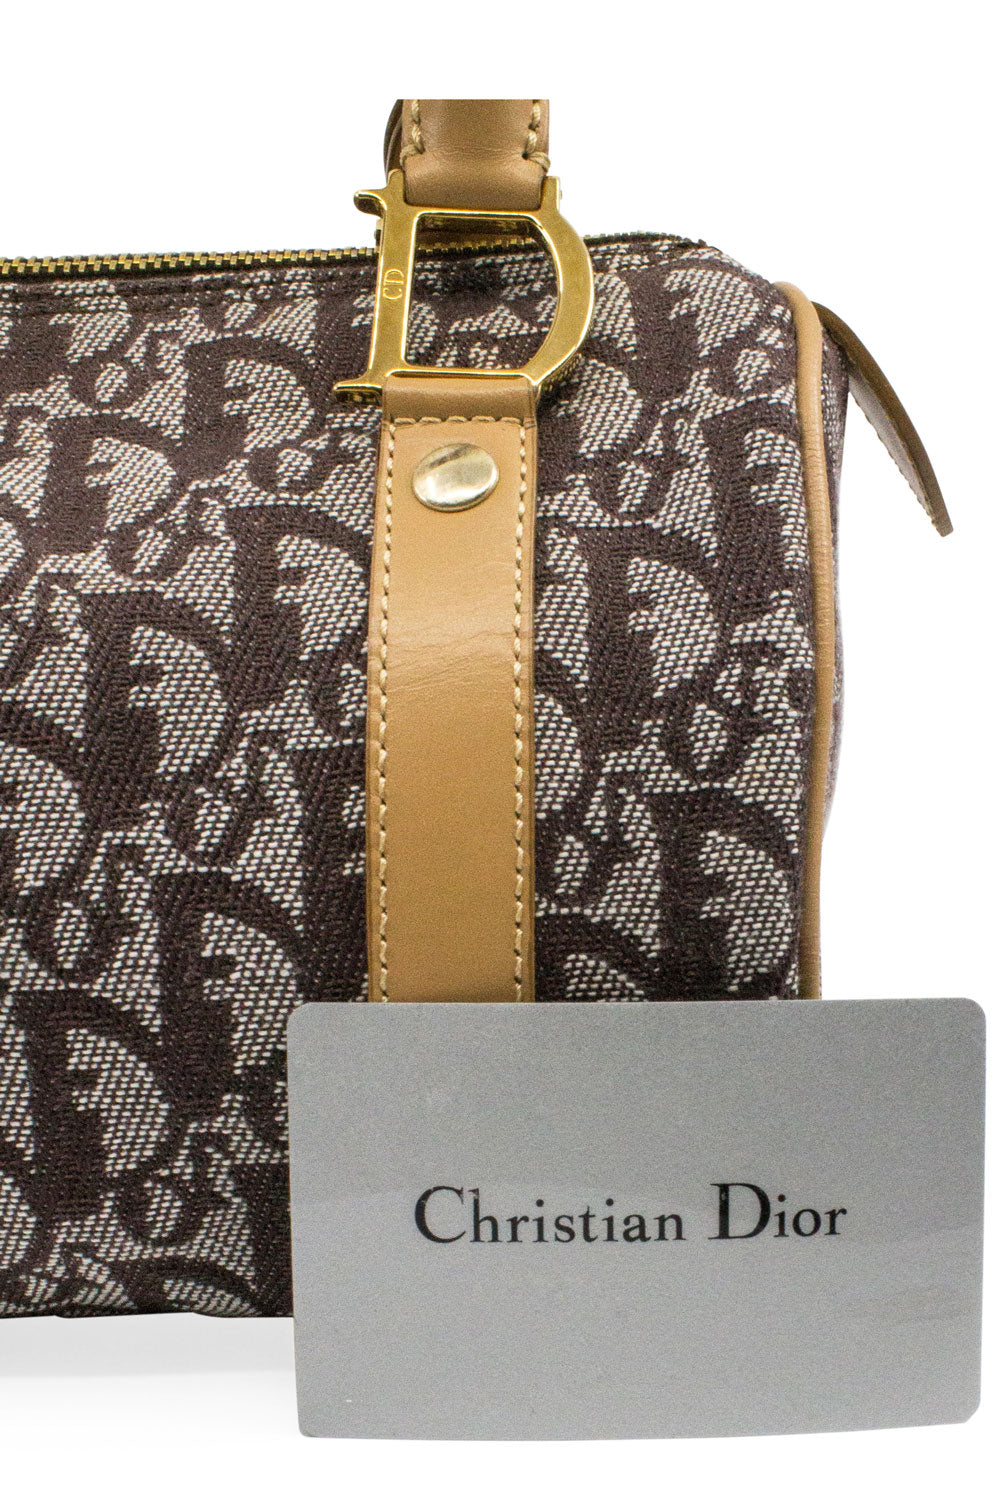 CHRISTIAN DIOR Mini Boston Bag Brown